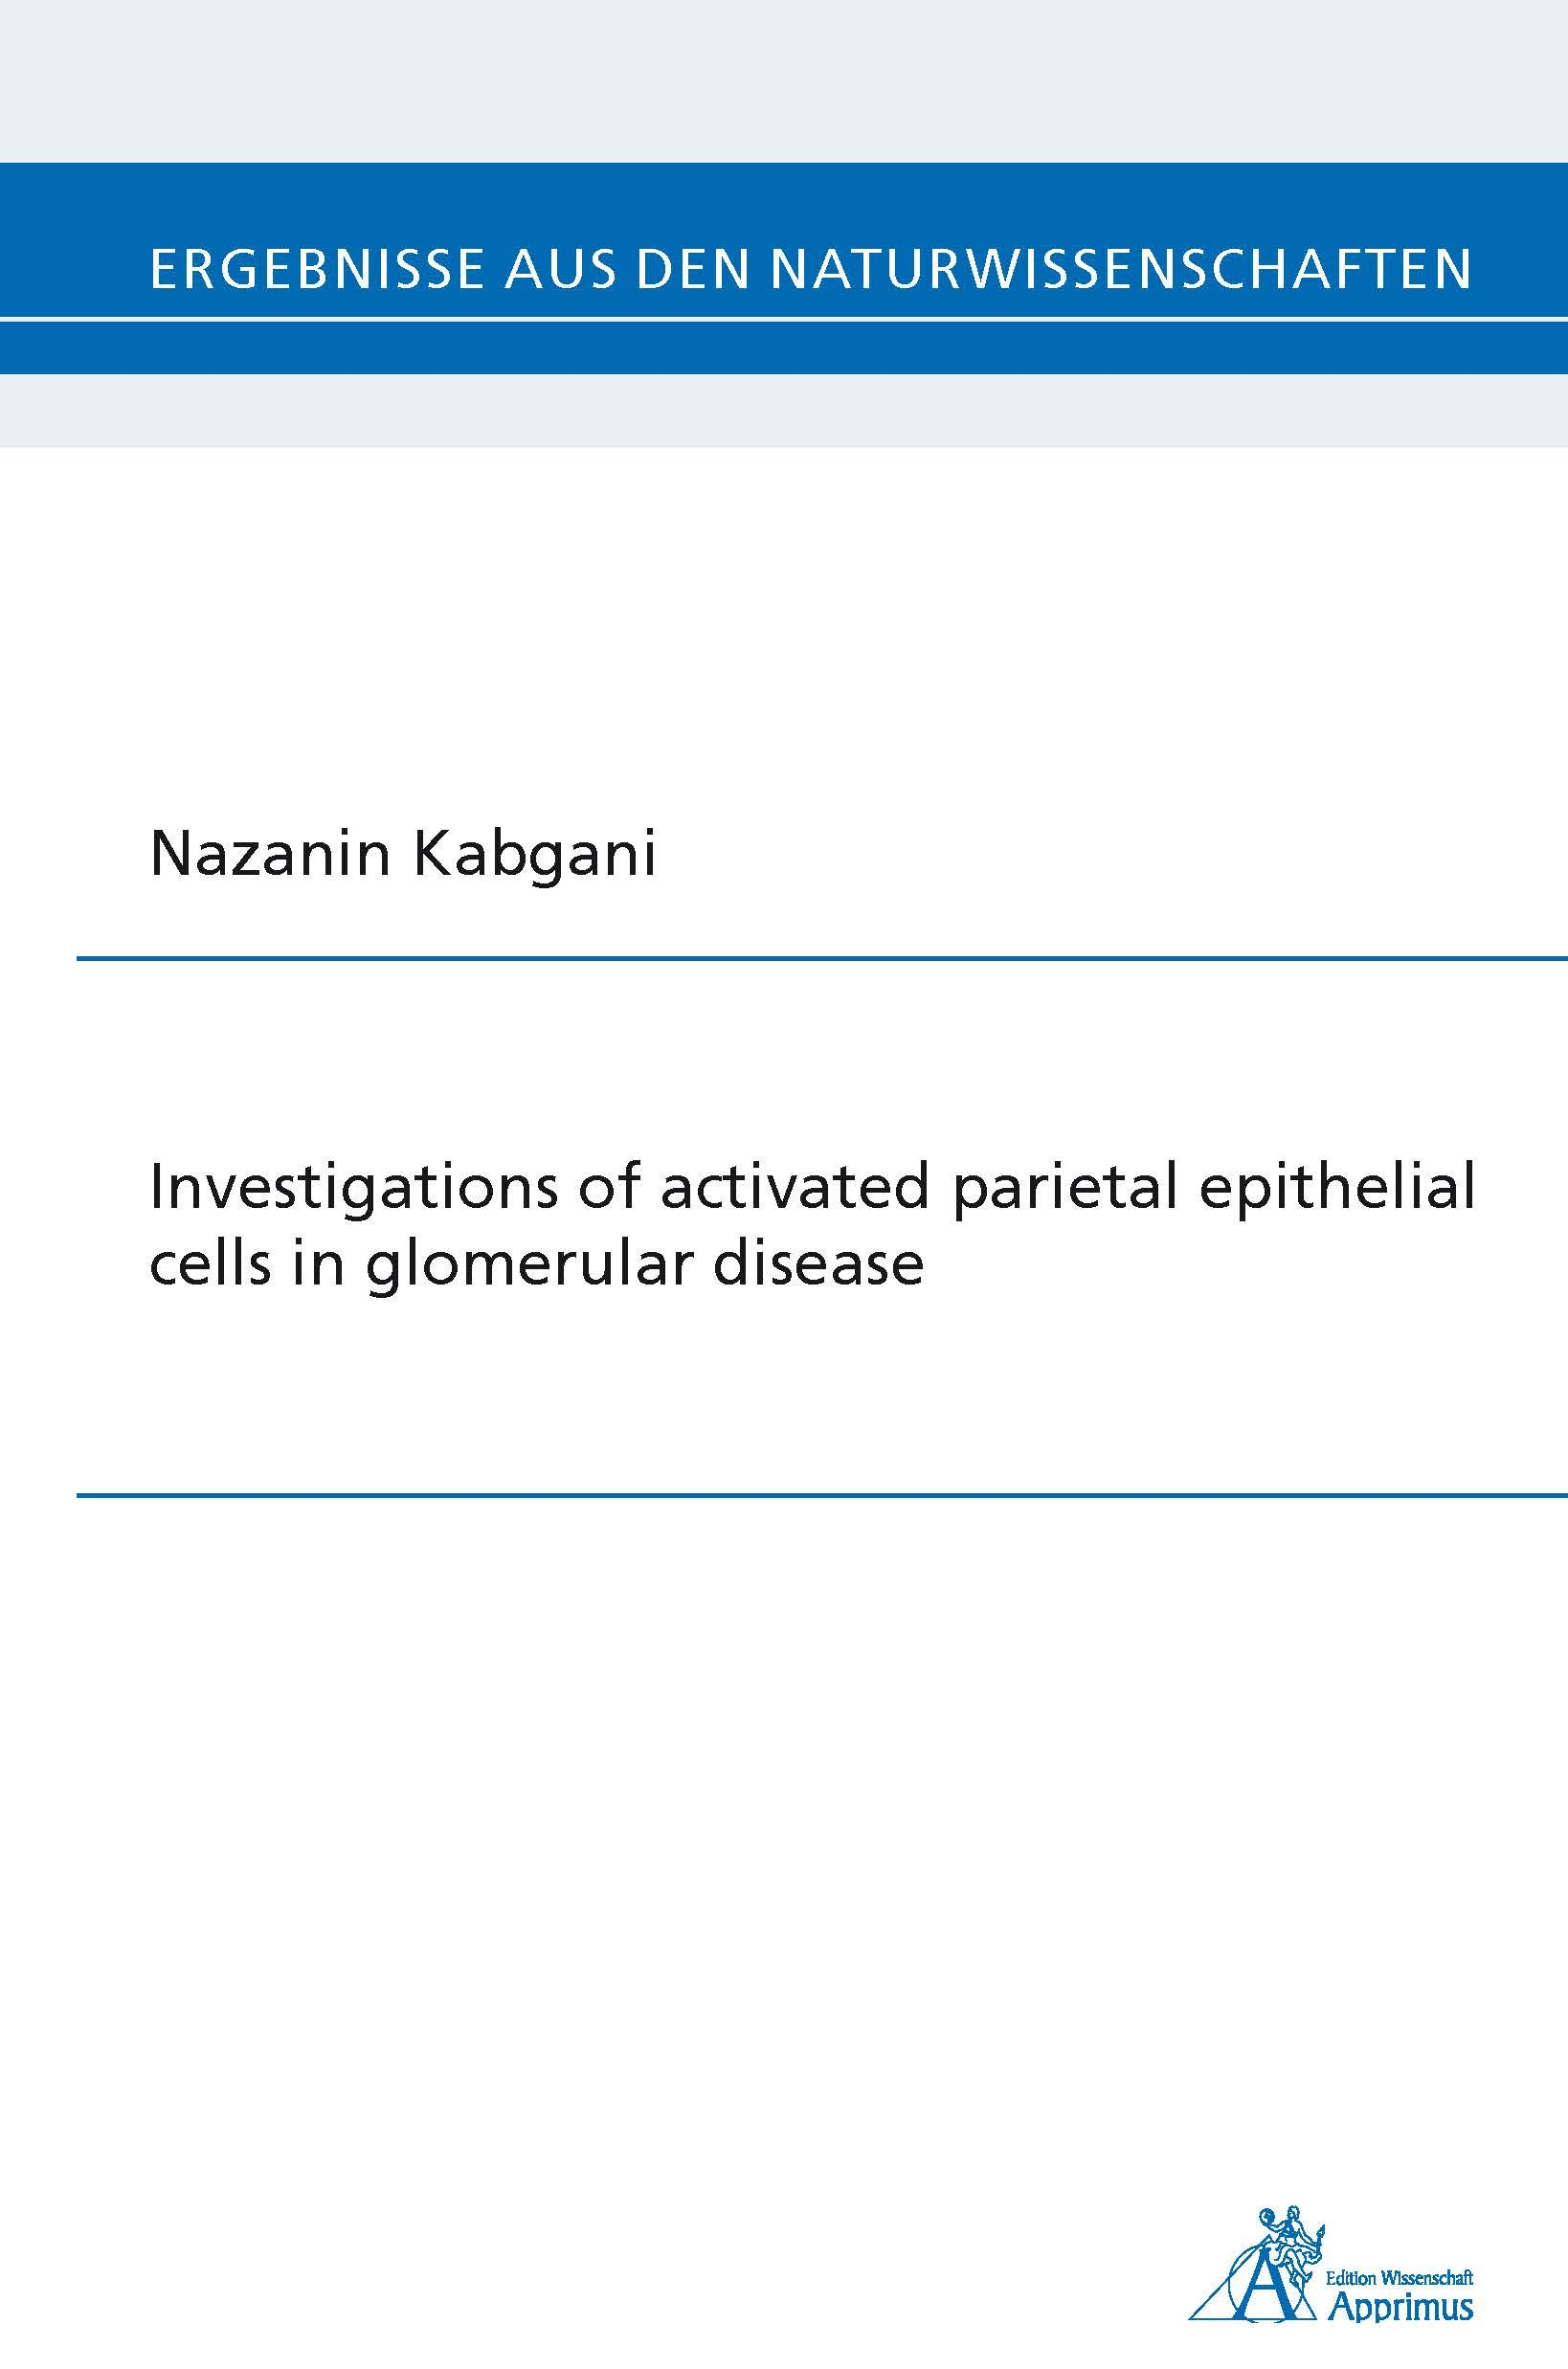 Investigations of activated parietal epithelial cells in glomerular disease